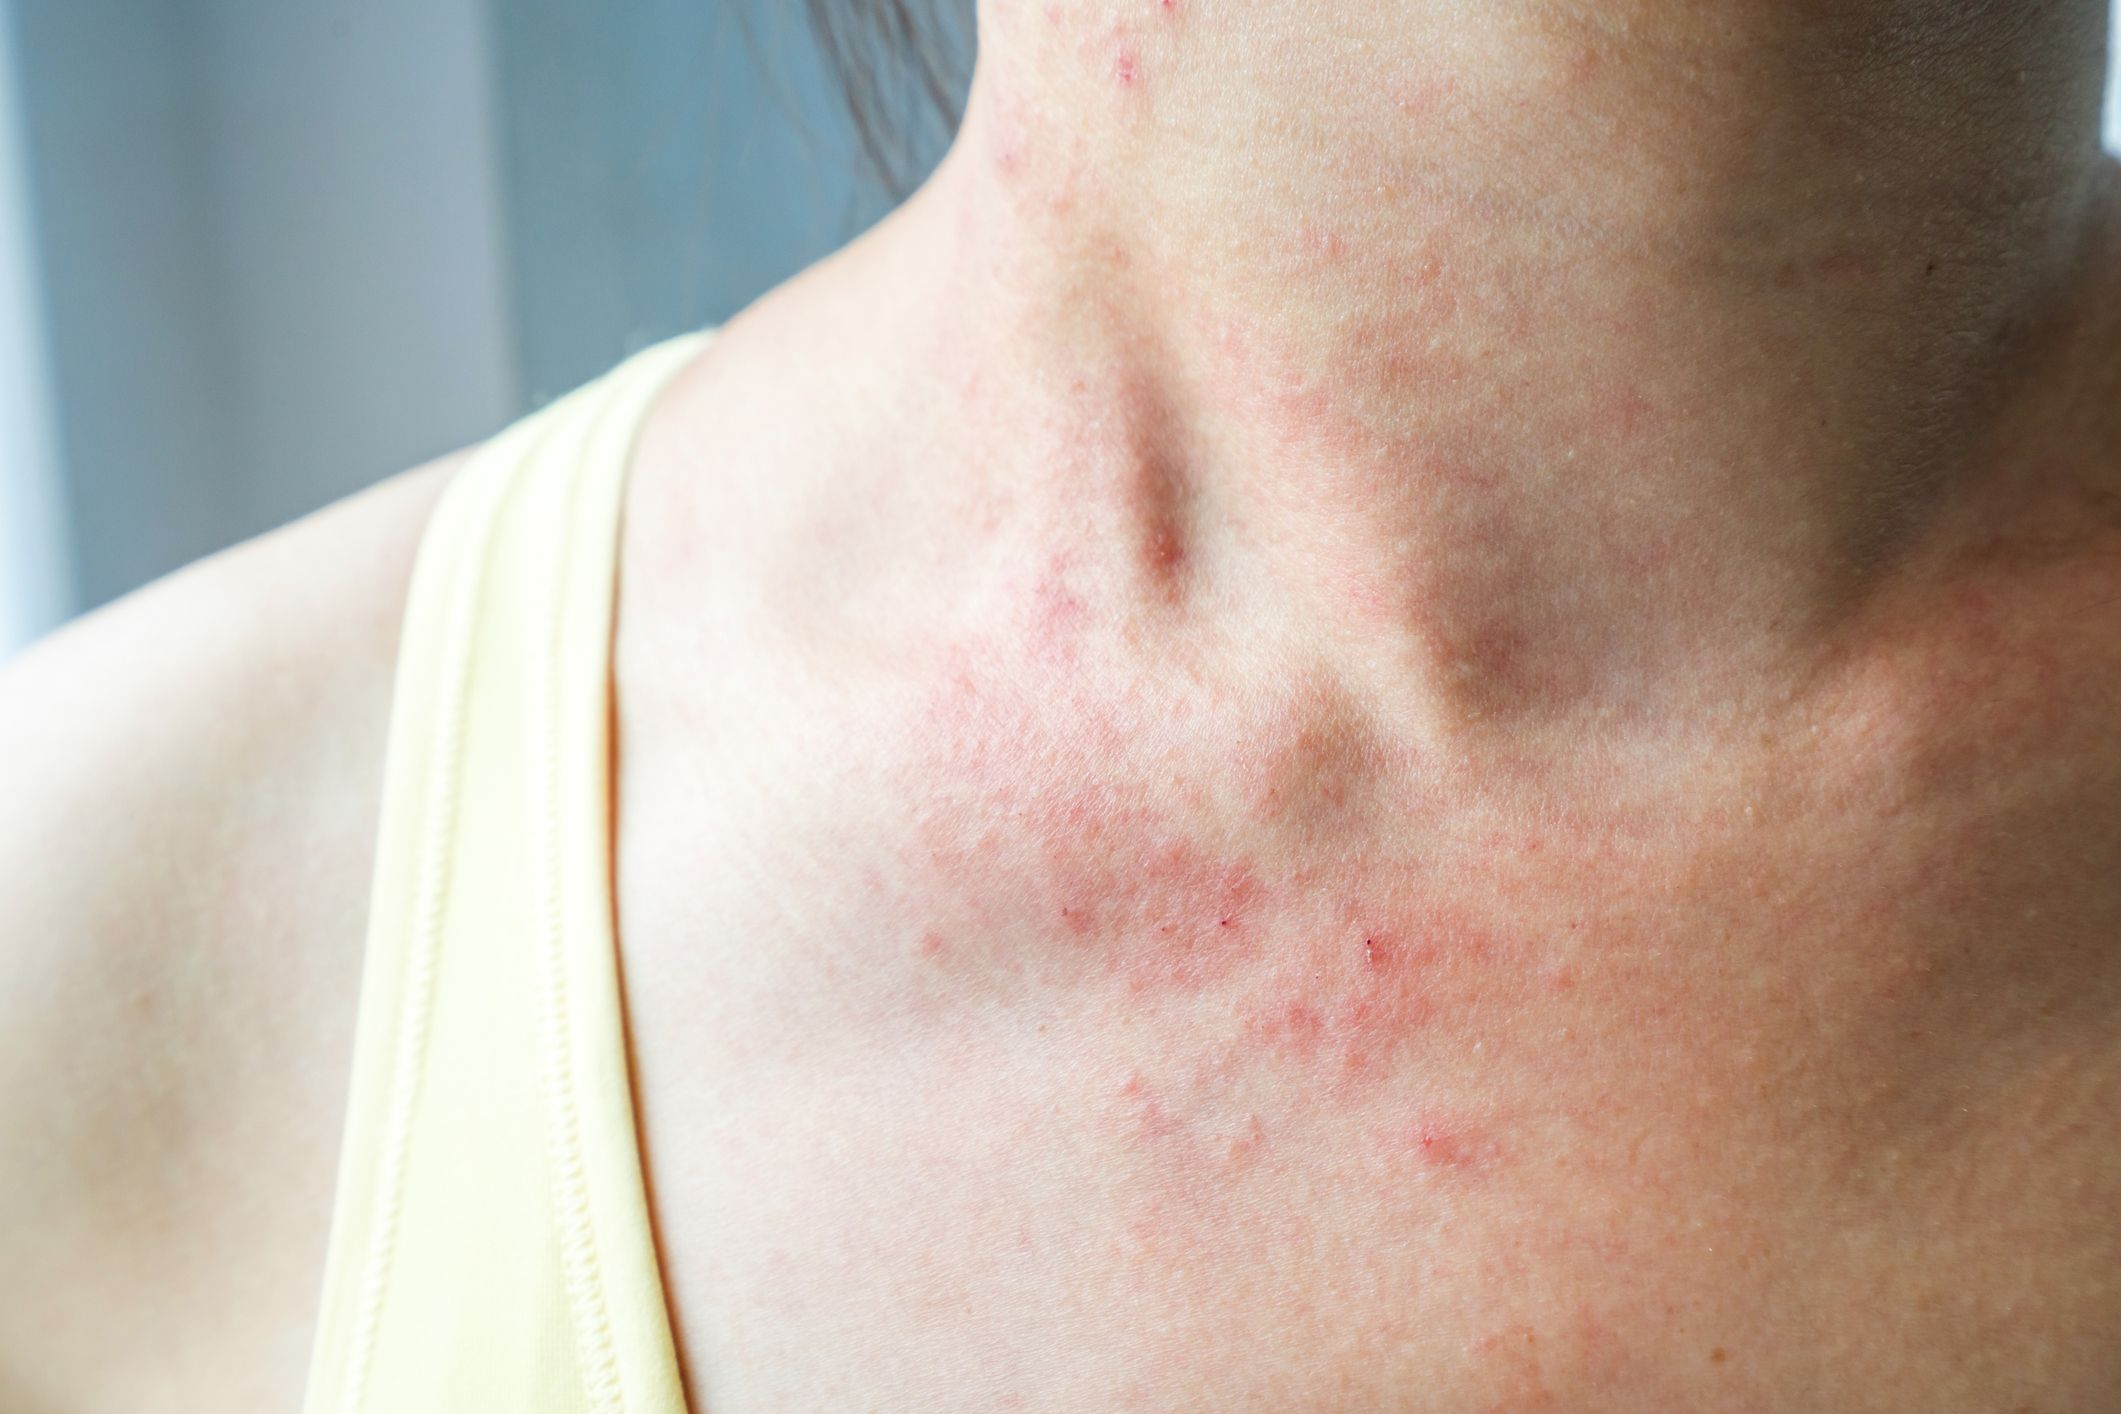 What Causes Stomach Fungal Skin Rash